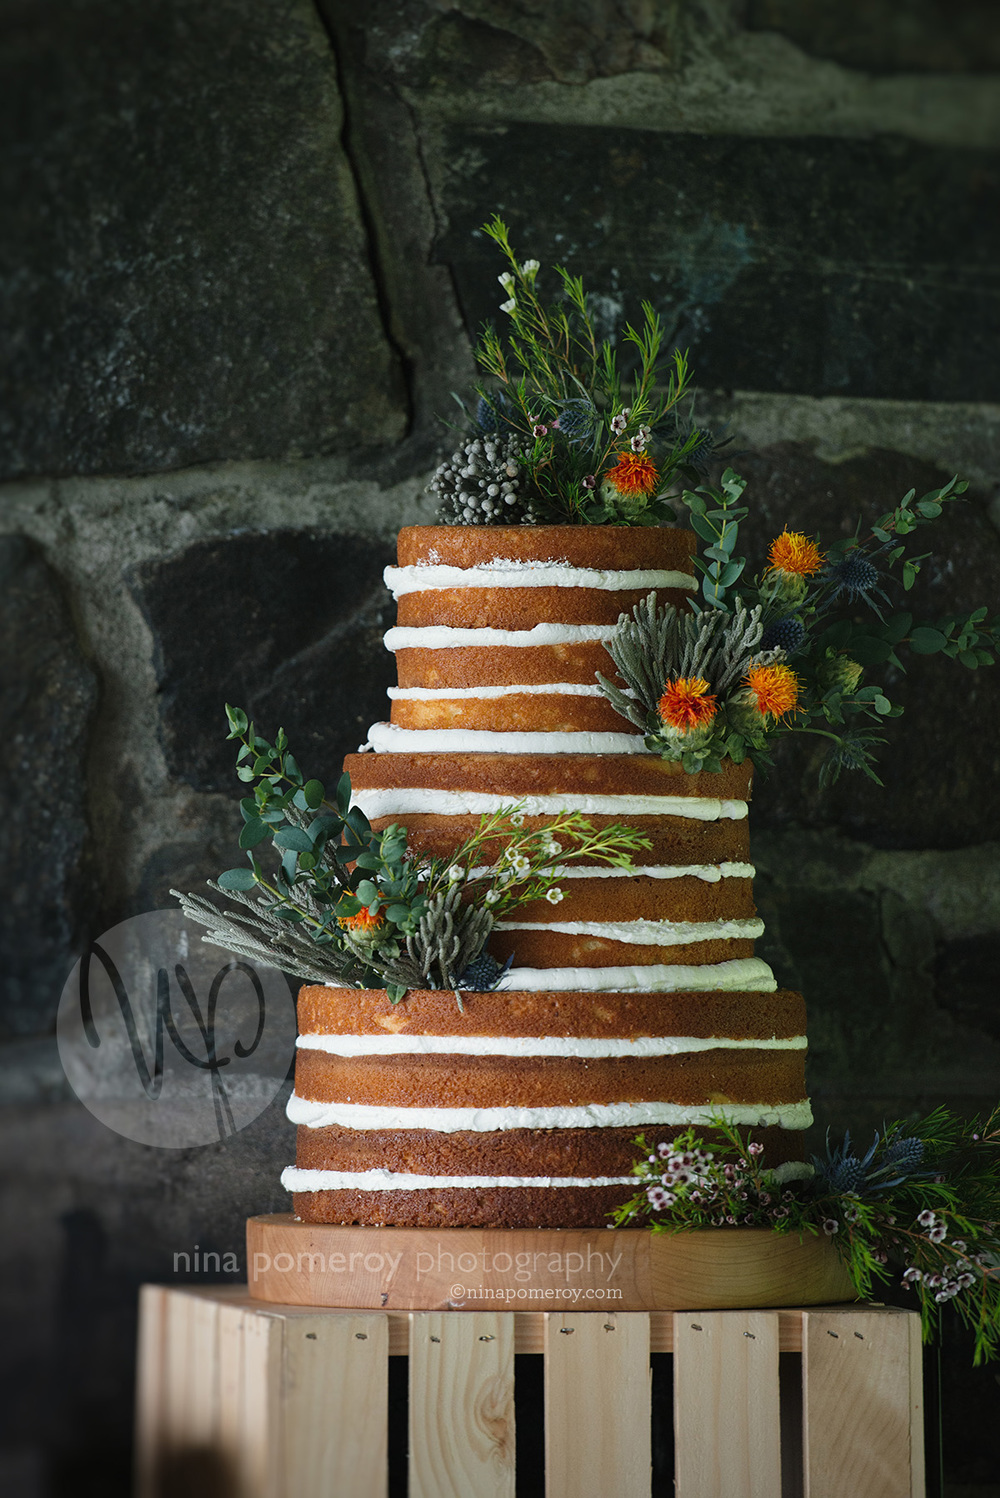 naked un-iced wedding cake embellished with flowers for this beautiful napa garden vineyard wedding taken by photographer nina pomeroy